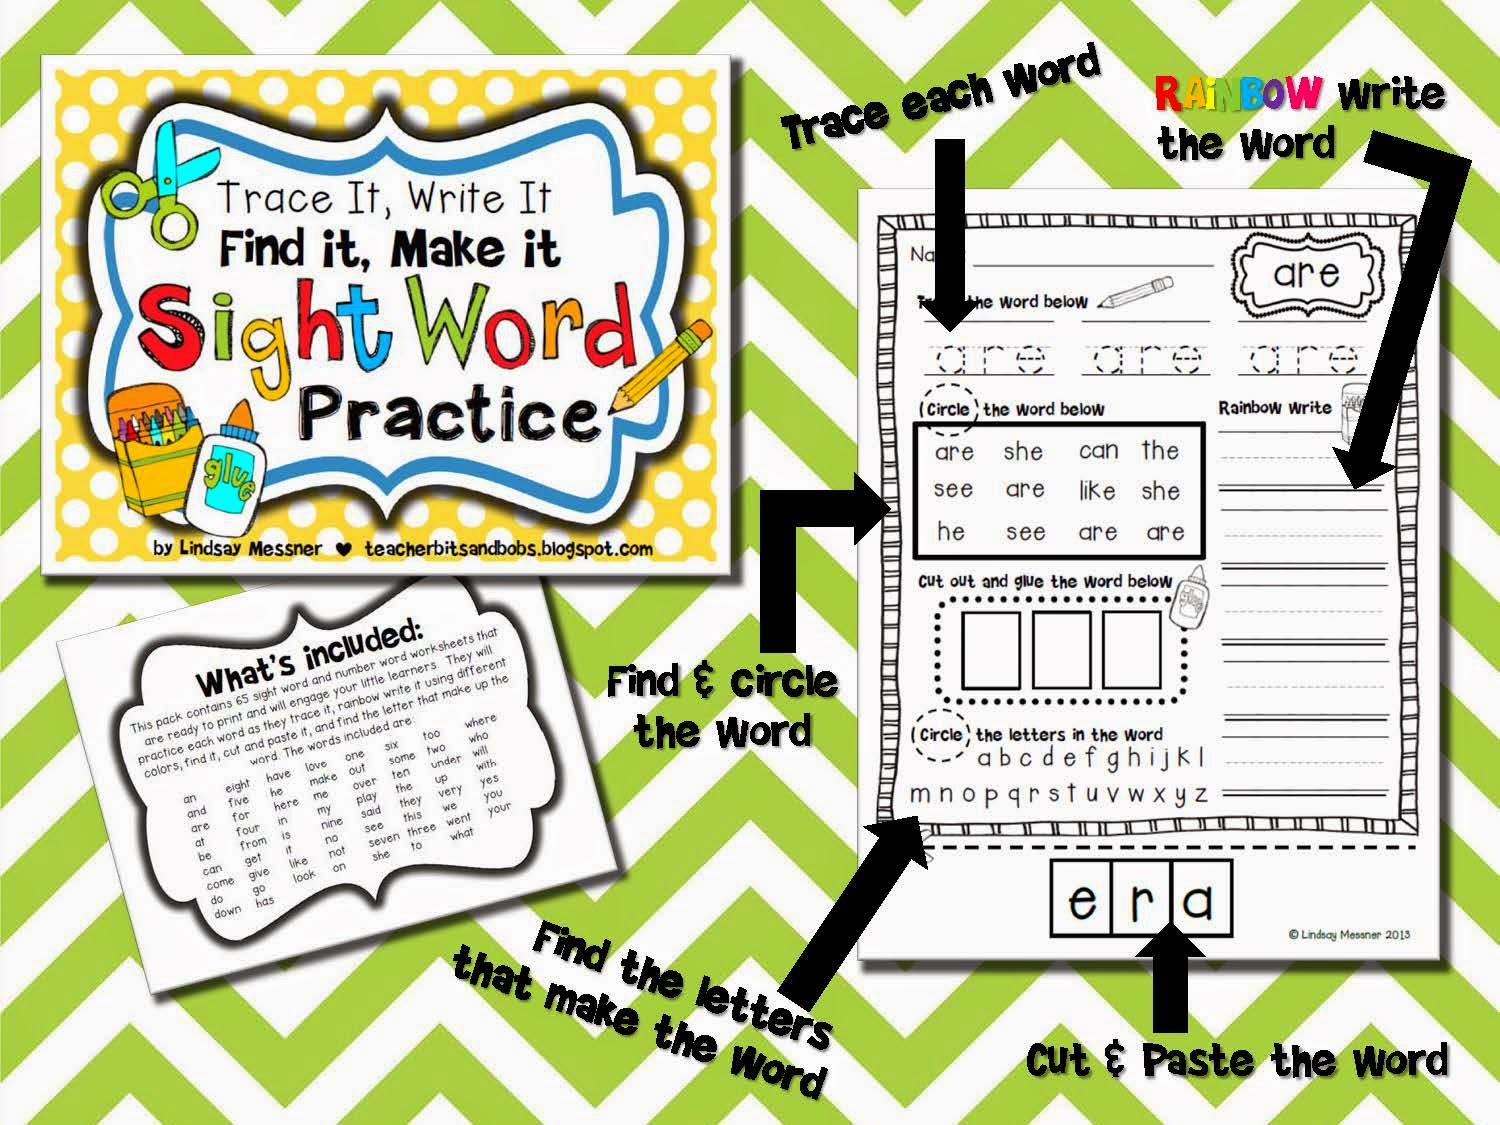 https://www.teacherspayteachers.com/Product/Trace-It-Write-It-Find-It-Make-It-Sight-Word-Practice-758804